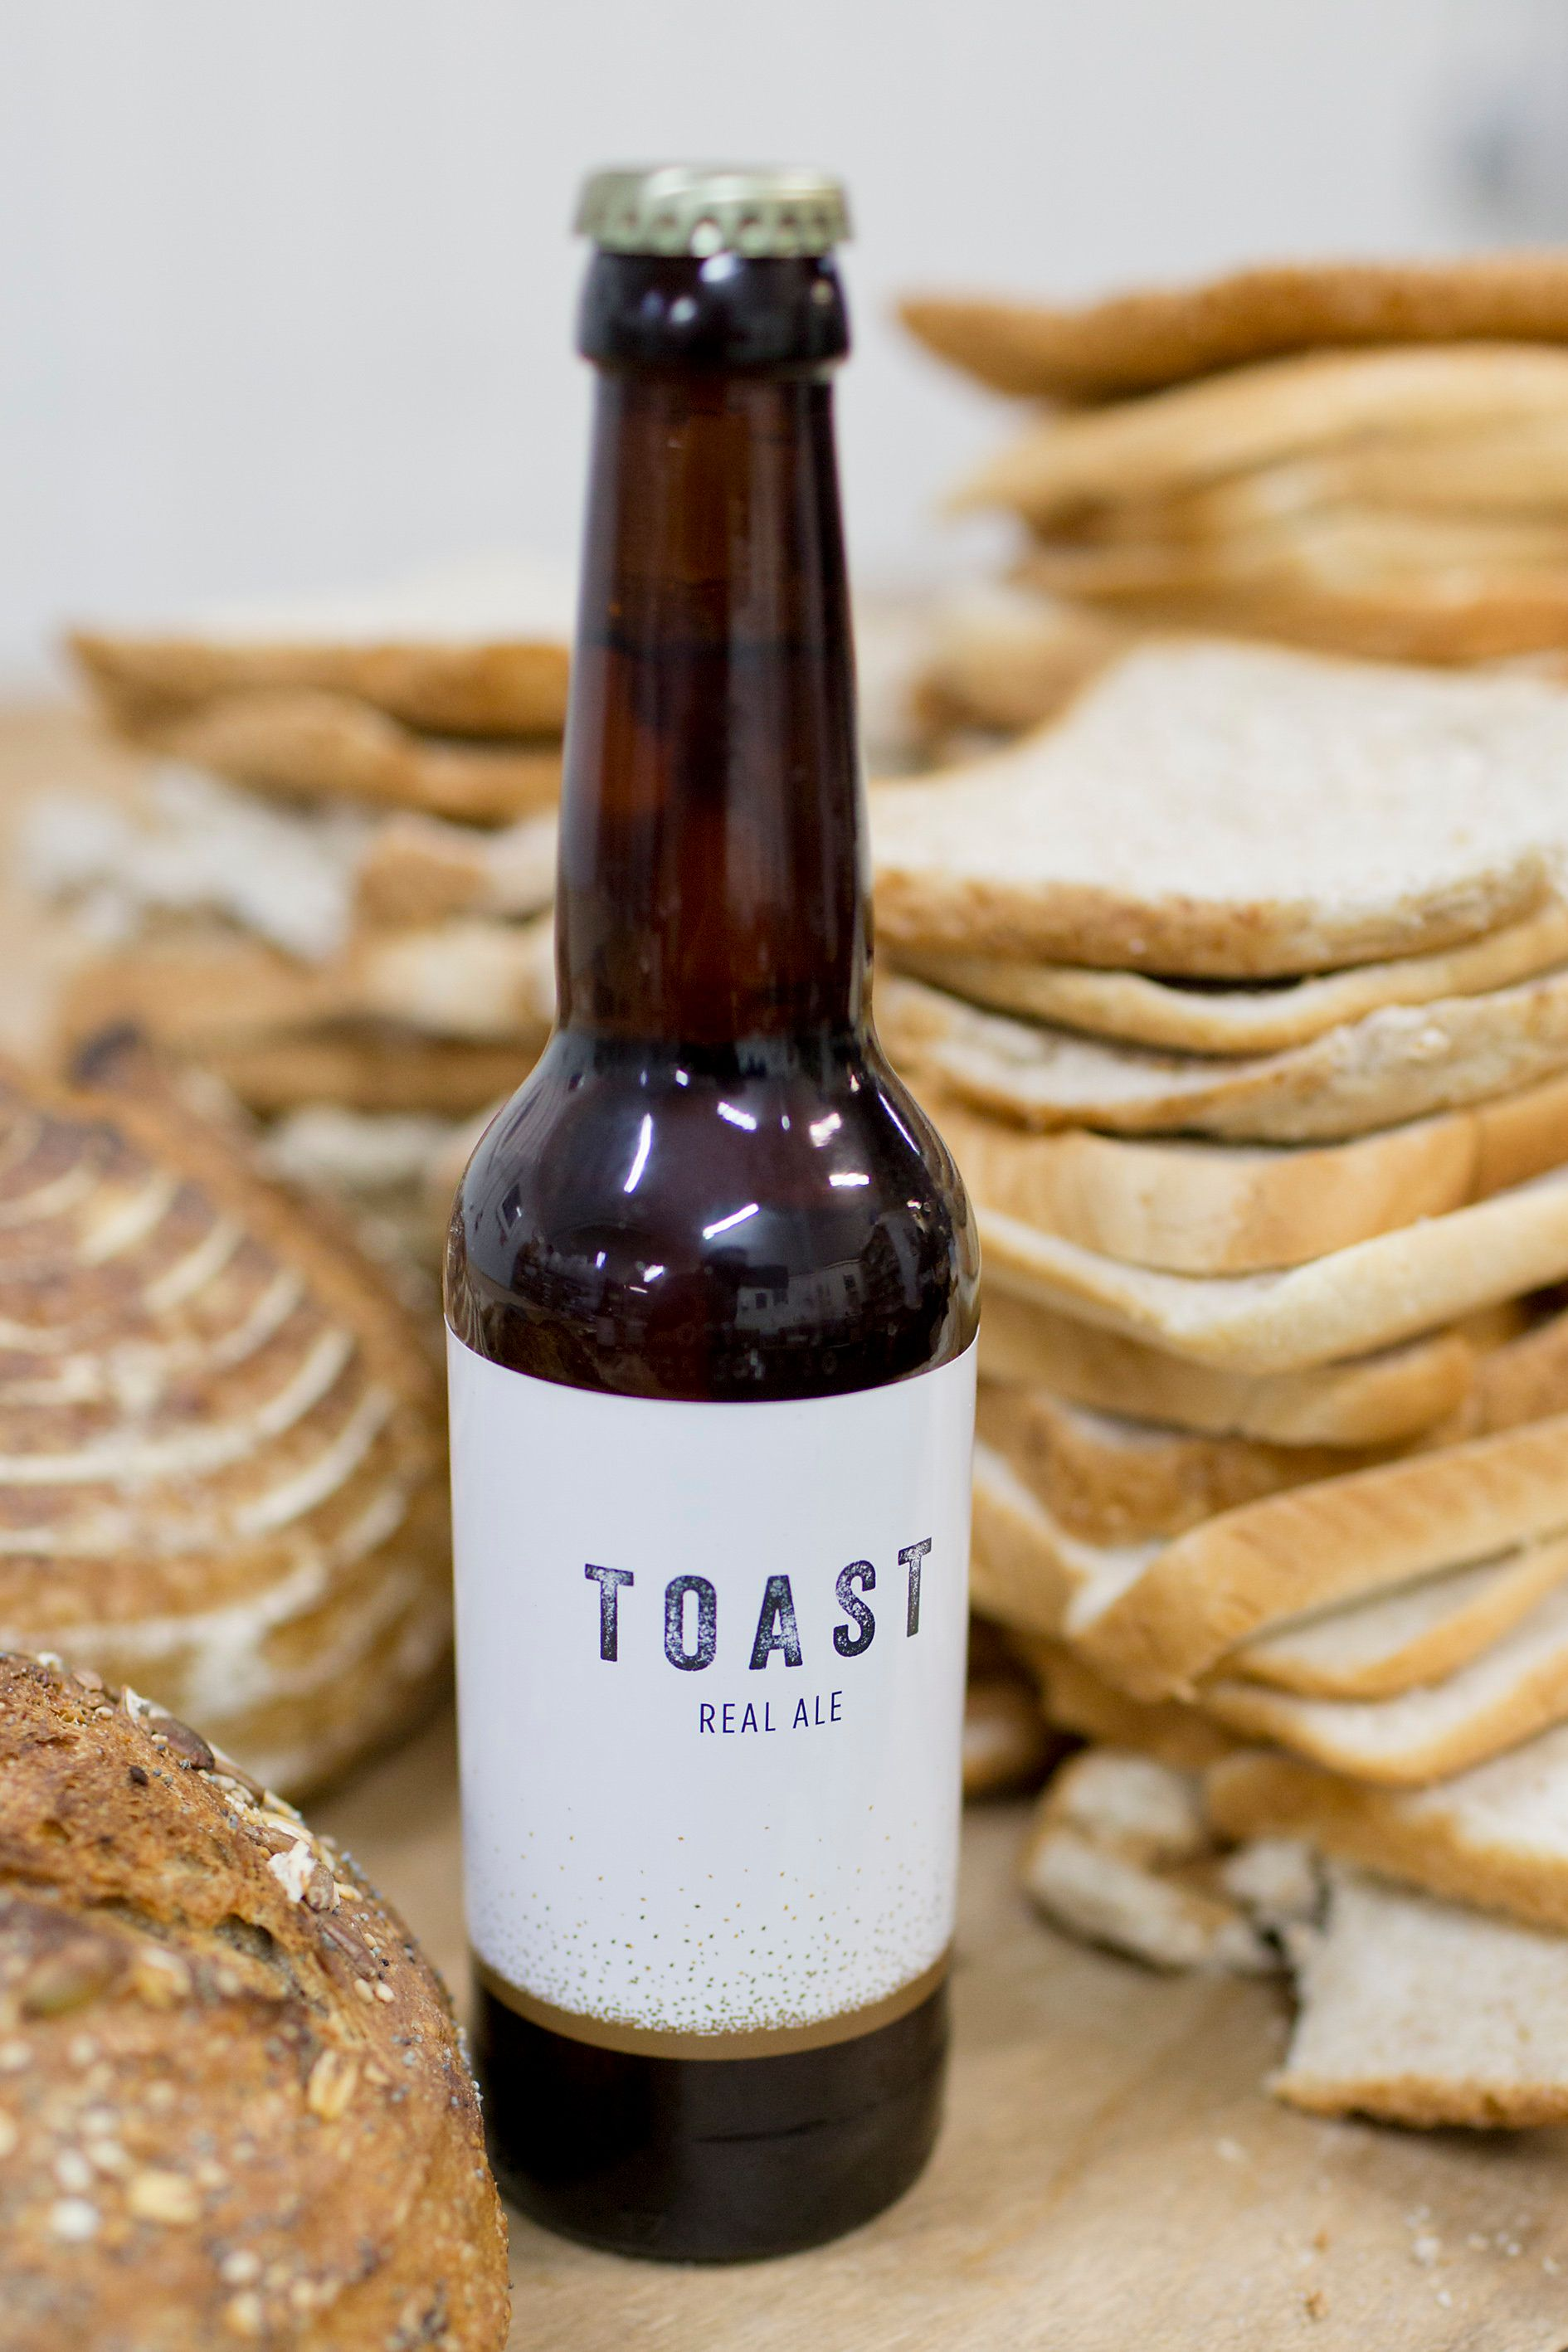 About one slice of bread is used for each bottle of Toast Ale that is produced.